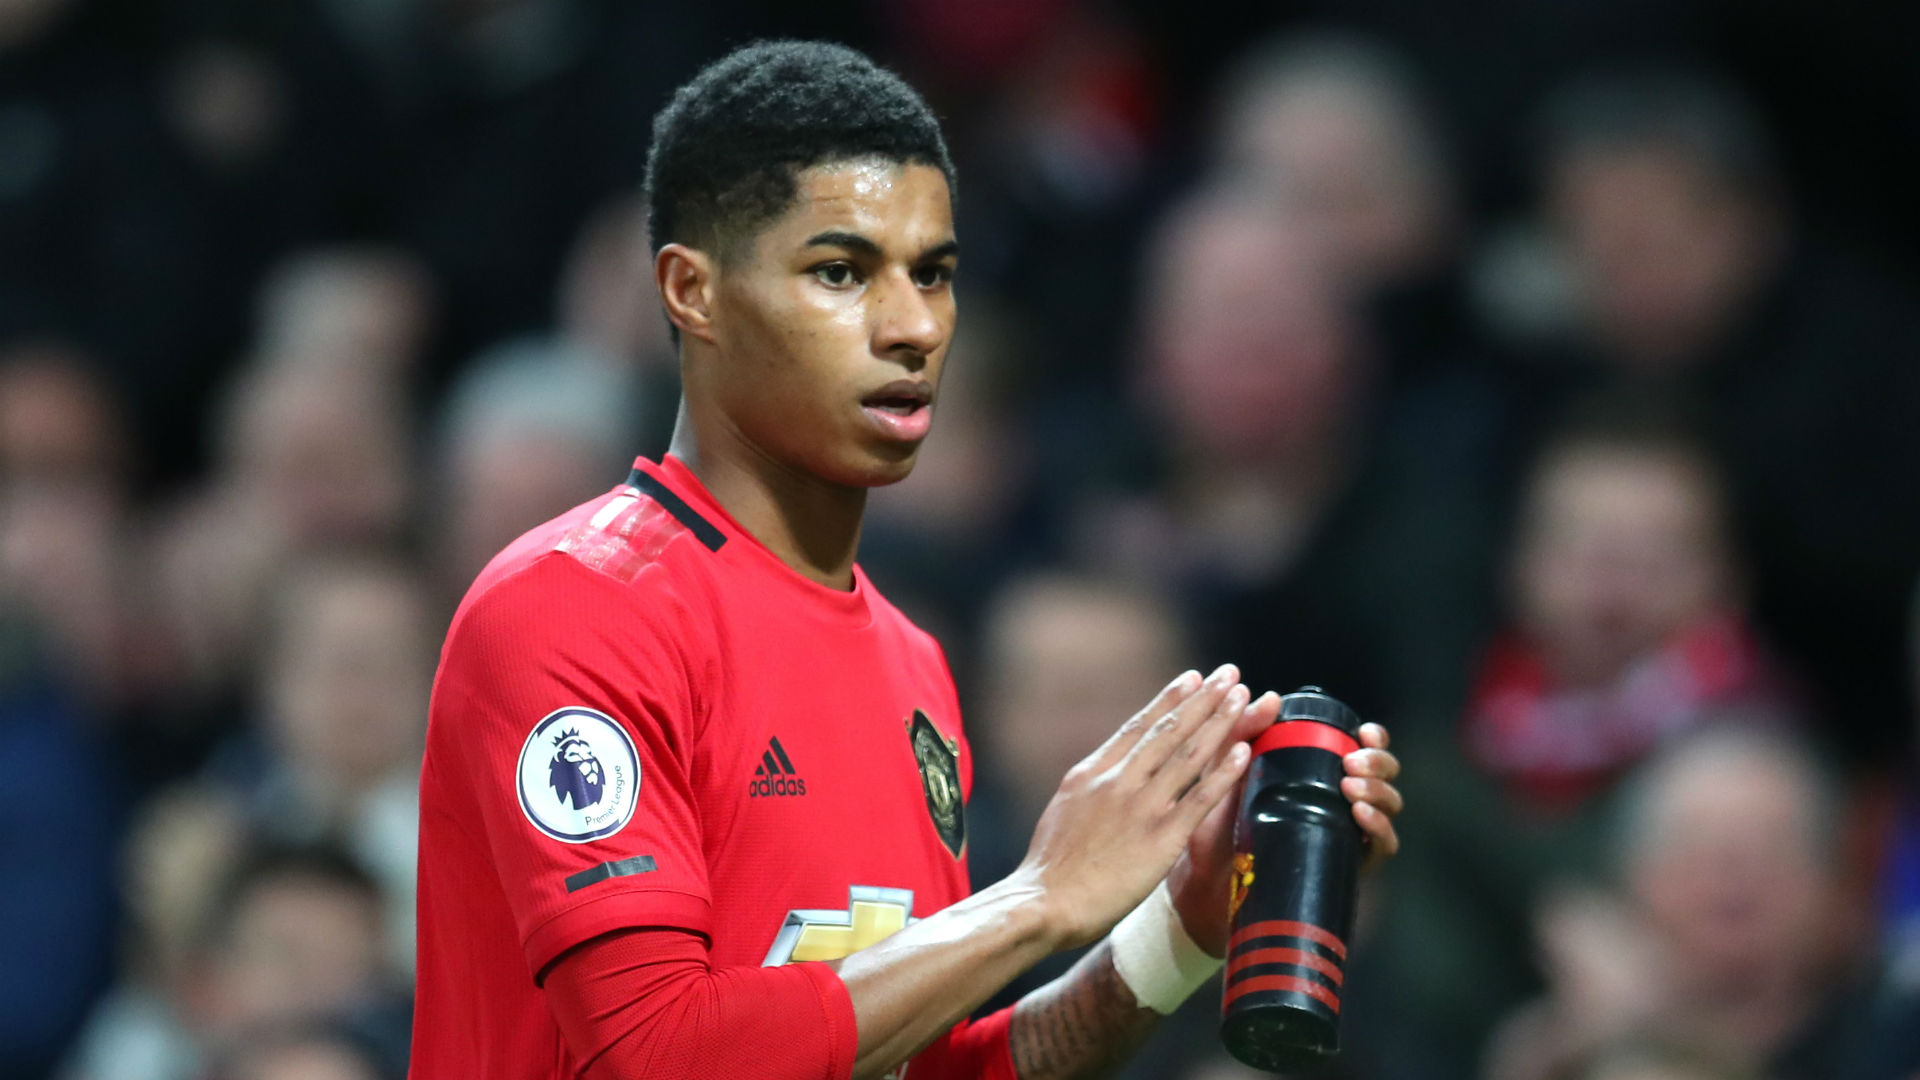 Manchester United Star Rashford Delivering Free Meals To Children During Premier League Suspension Goal Com